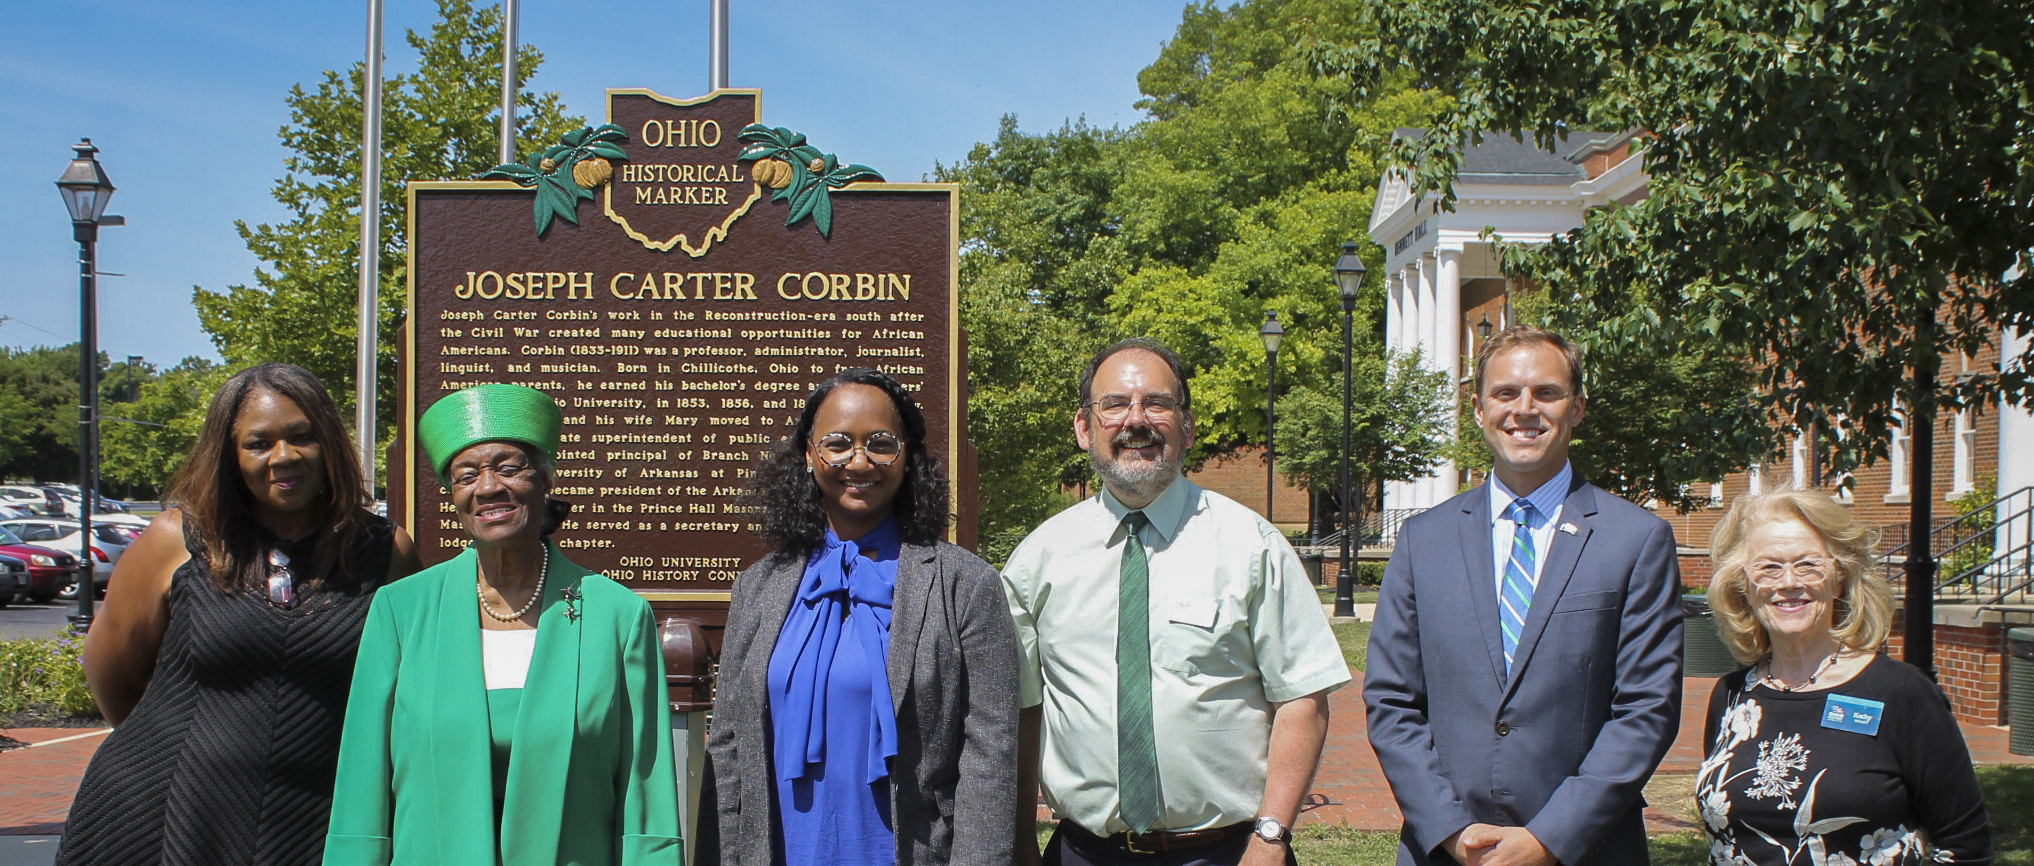 Historical Marker Unveiled in Ohio for J.C. Corbin